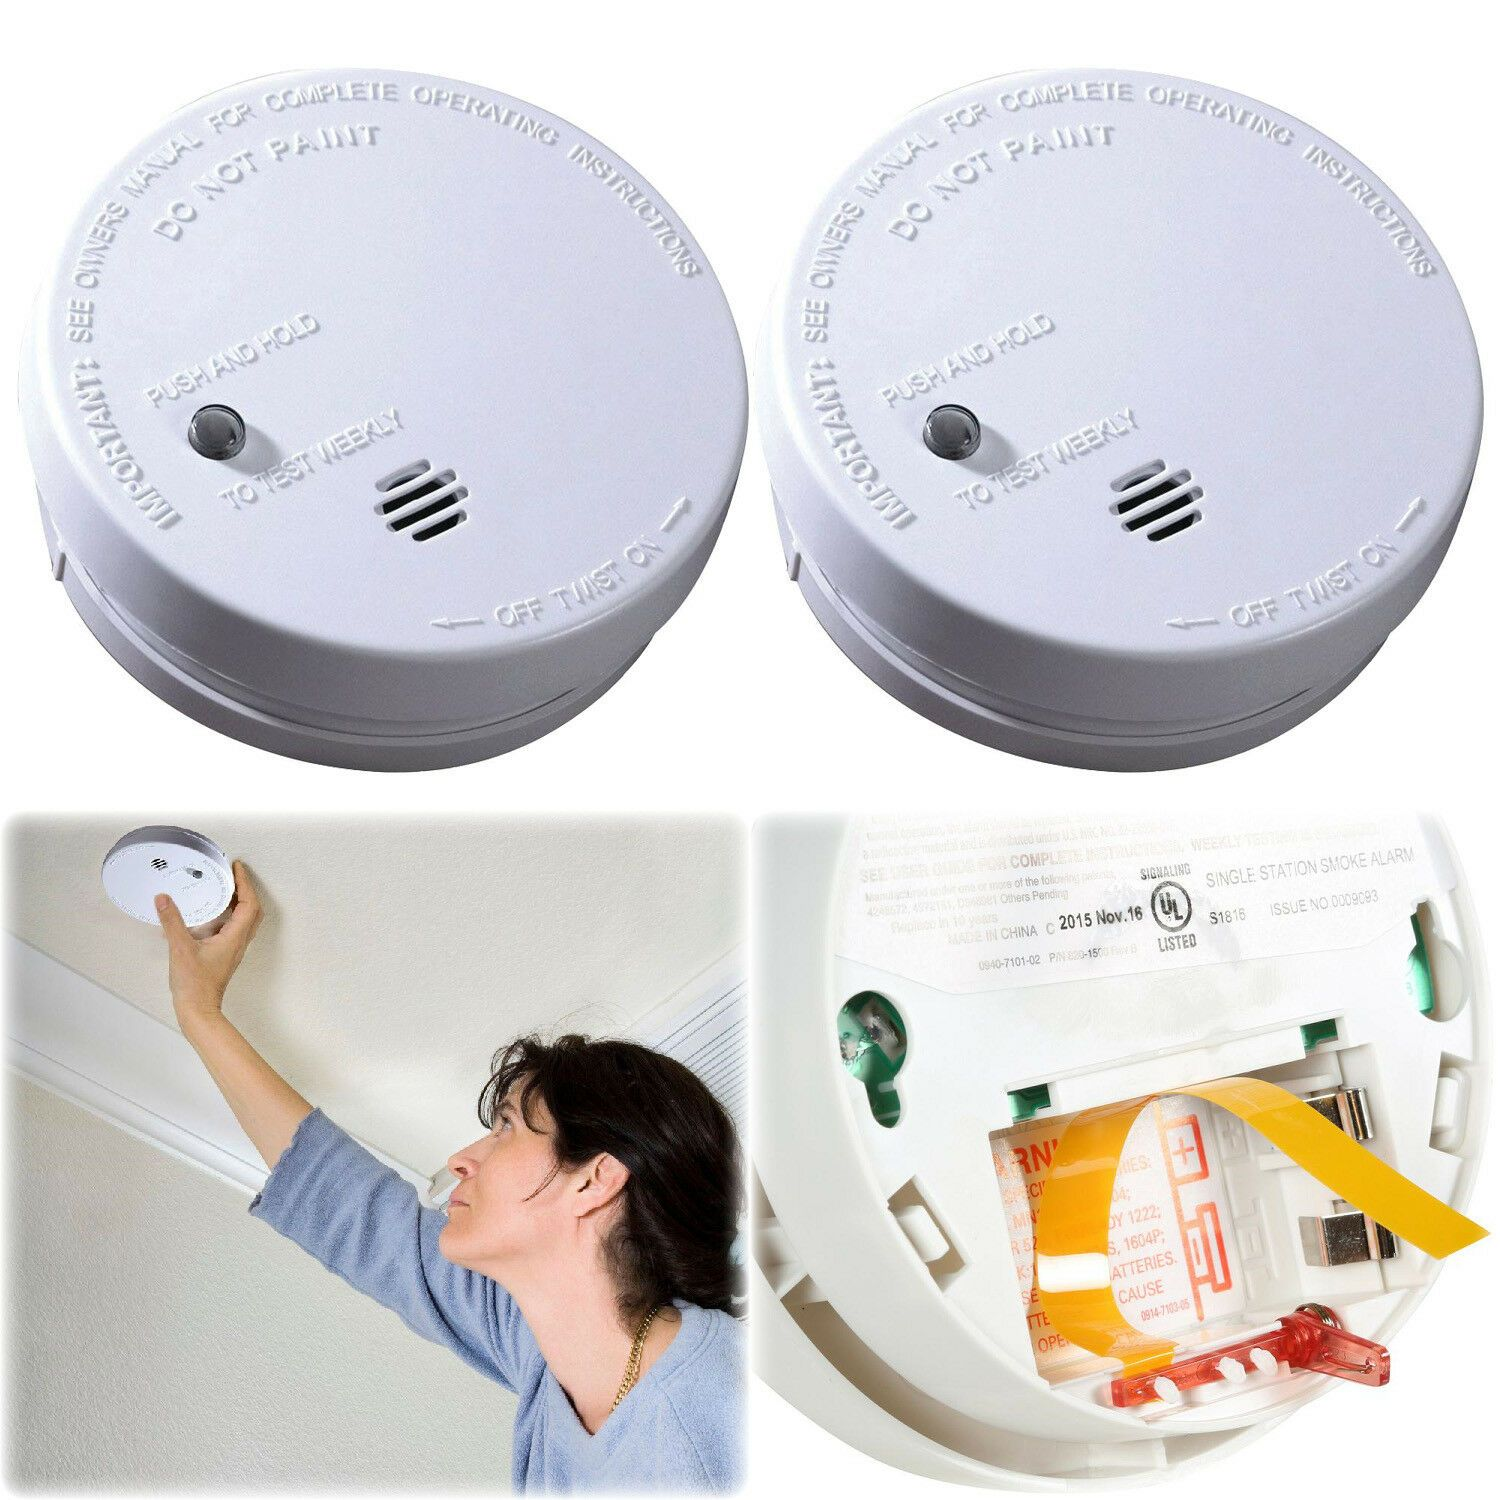 2 Pack Ionization Smoke Detector Battery Operated Home Fire Alarm Safety Sensor Smoke Alarm Smokealarm In 2020 Smoke Alarms Fire Alarm Smoke Detector